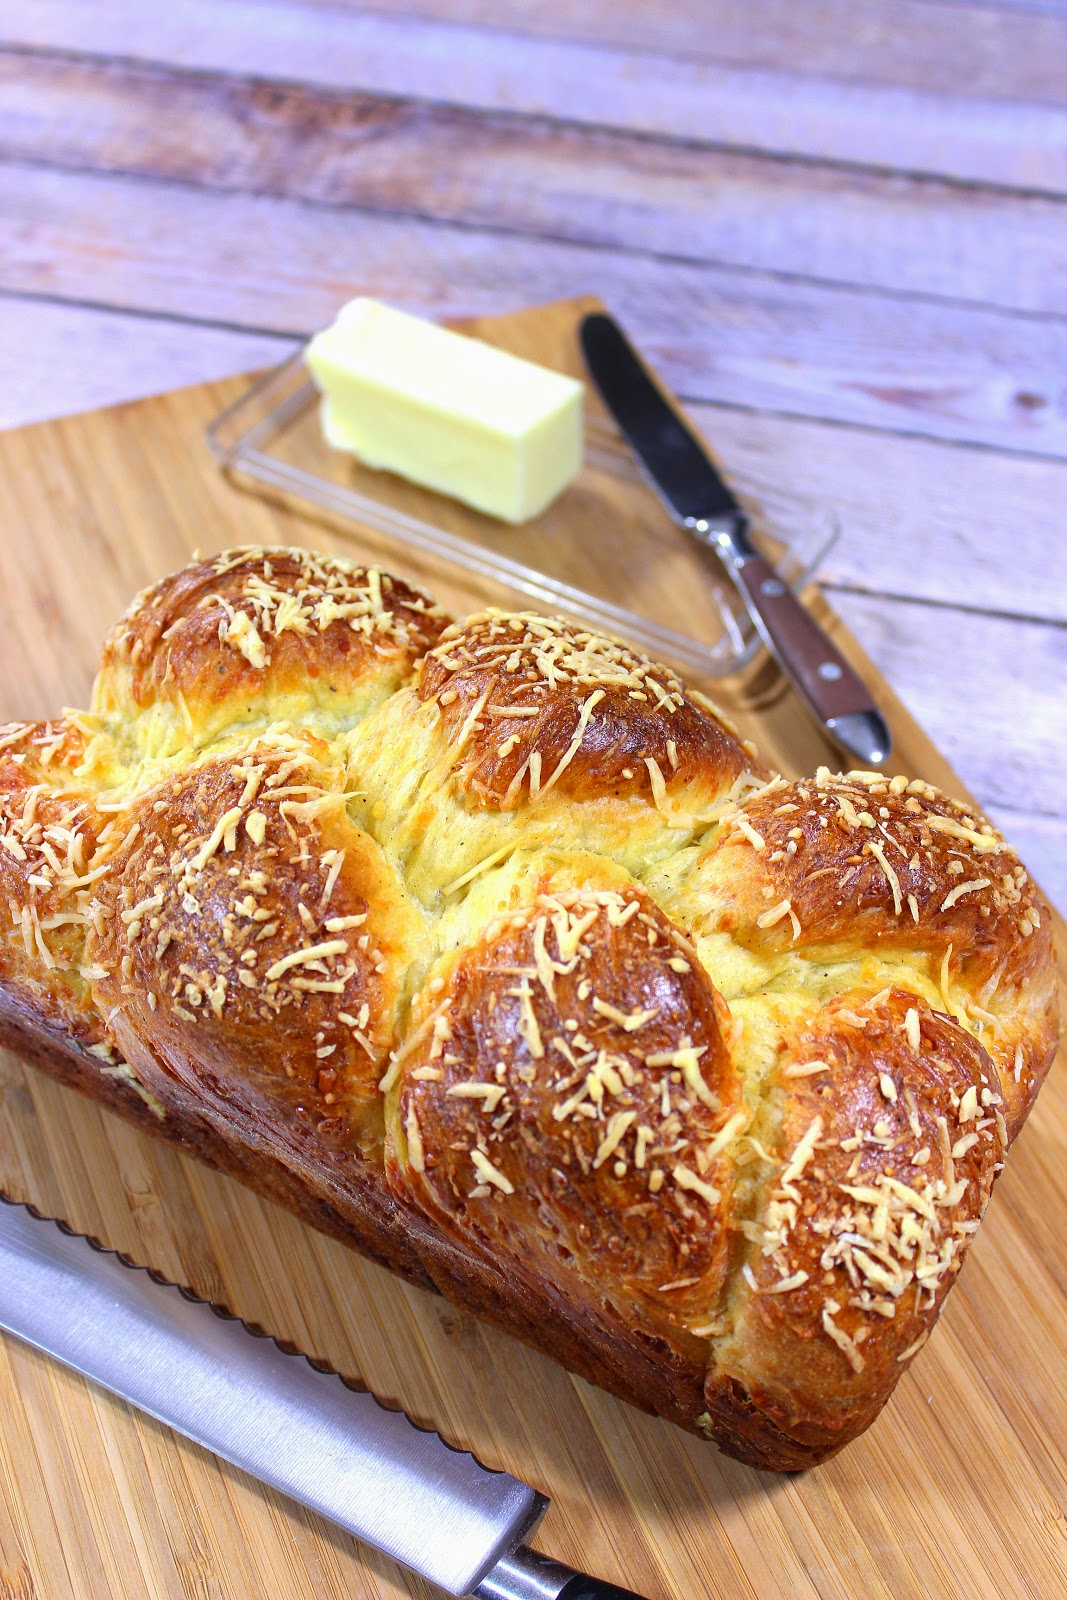 The texture of this golden egg, Italian Easter Cheese Bread is incredibly light and airy. In addition it's loaded with so much Italian cheese that the crust is super crispy and crunchy.